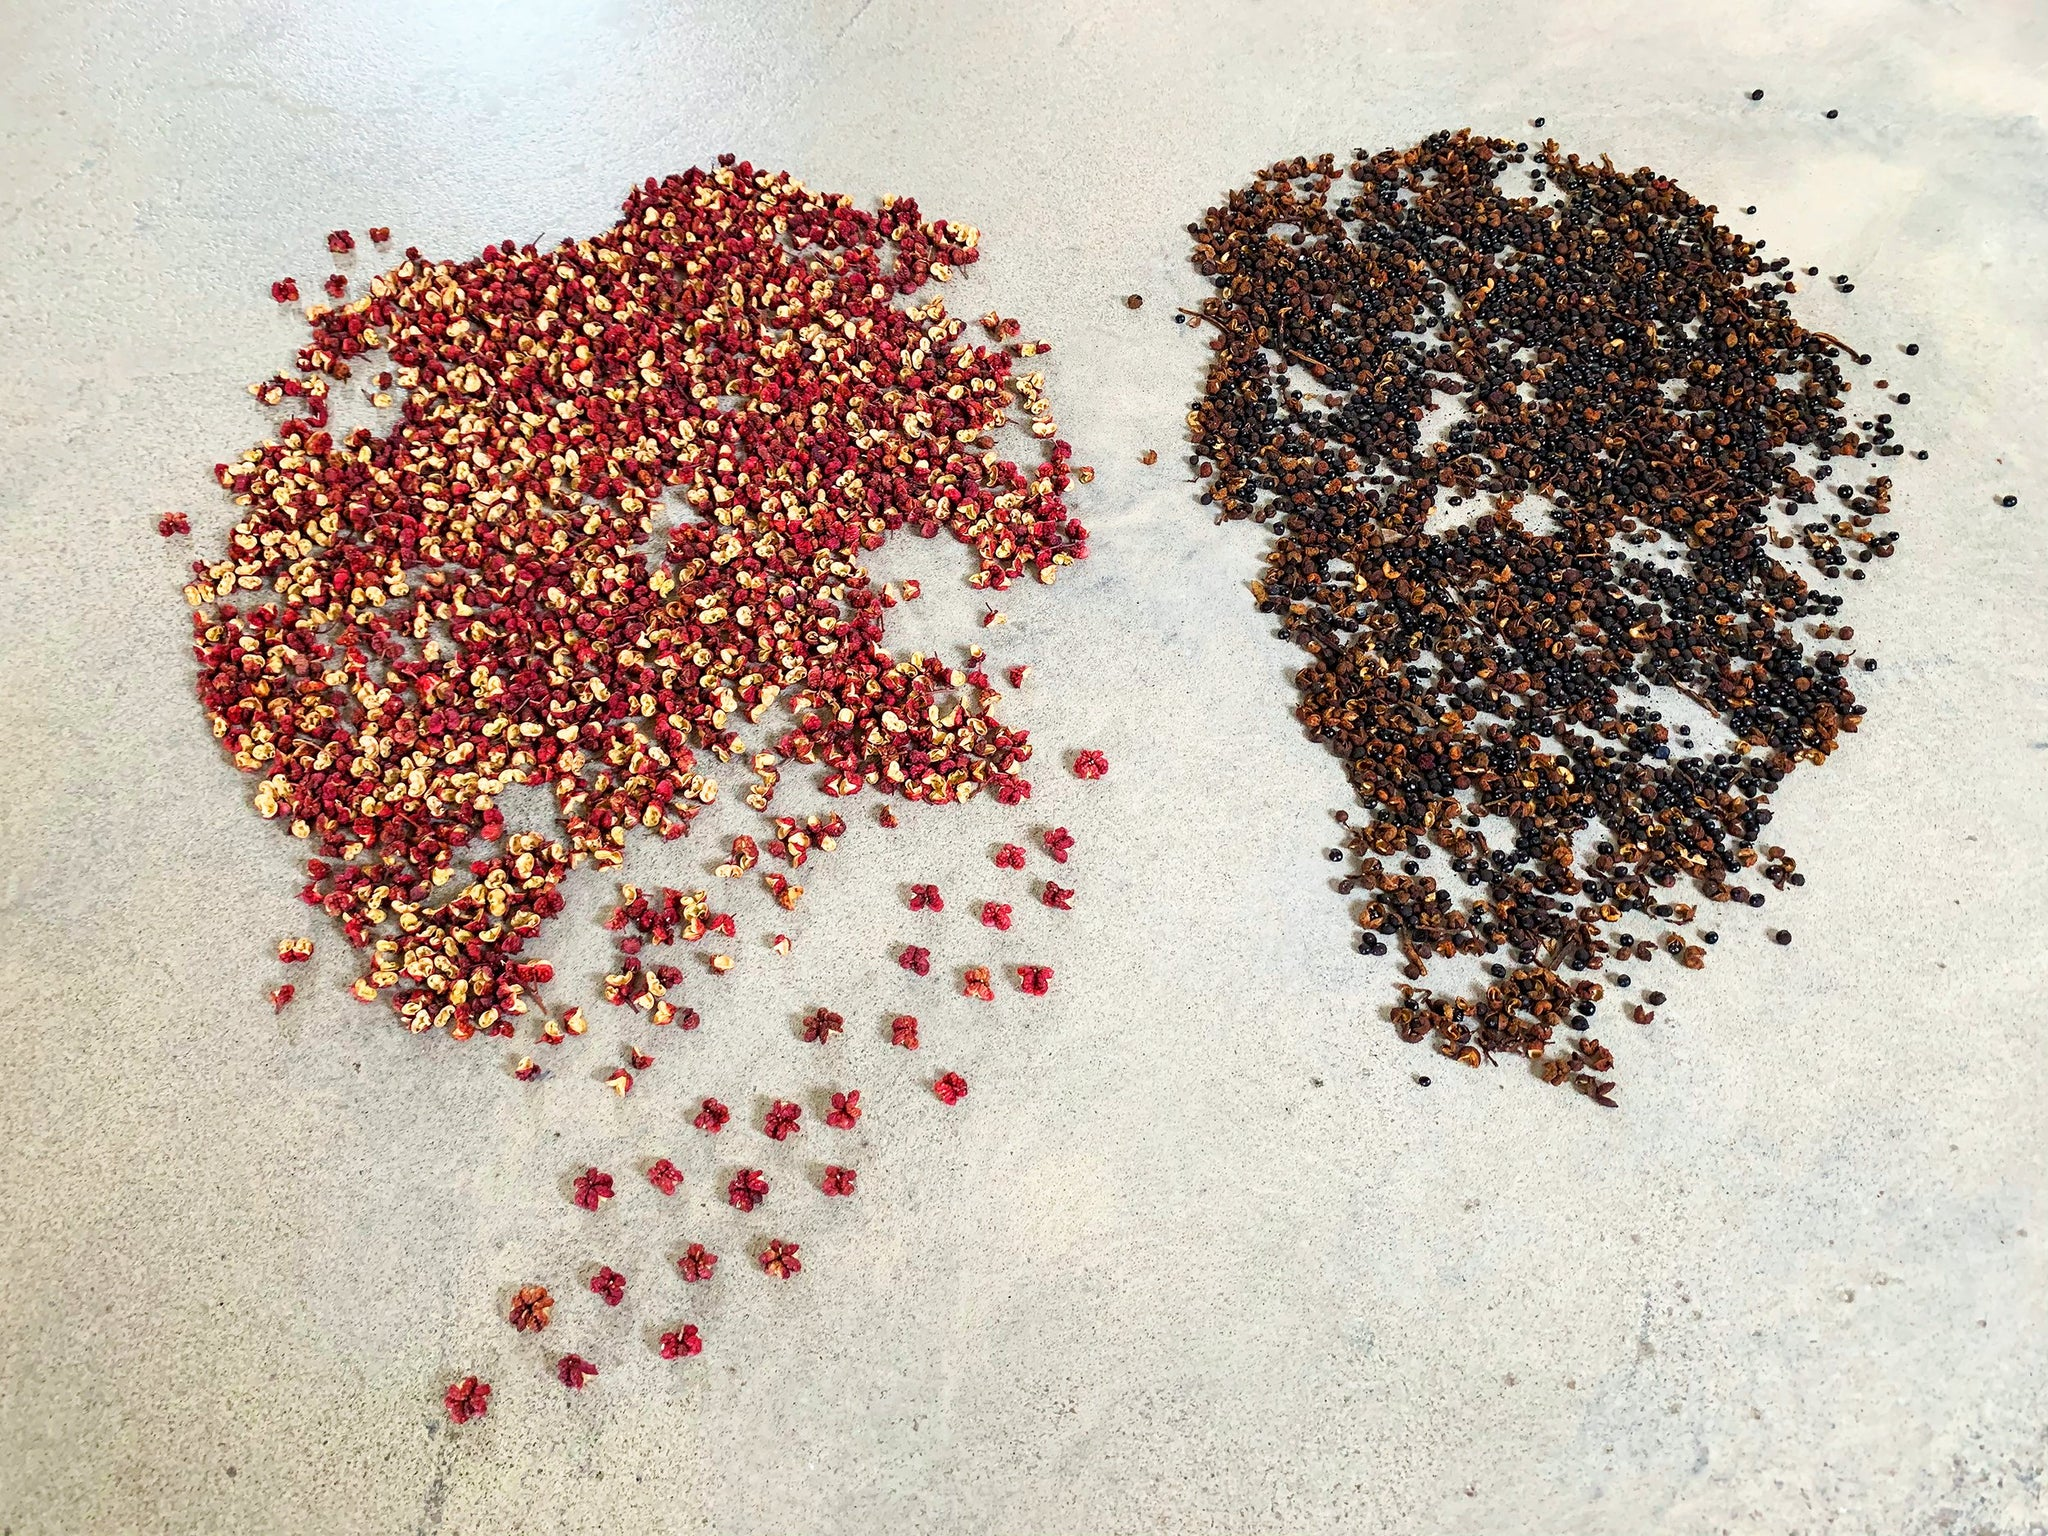 Sichuan Flower Pepper and supermarket Sichuan pepper